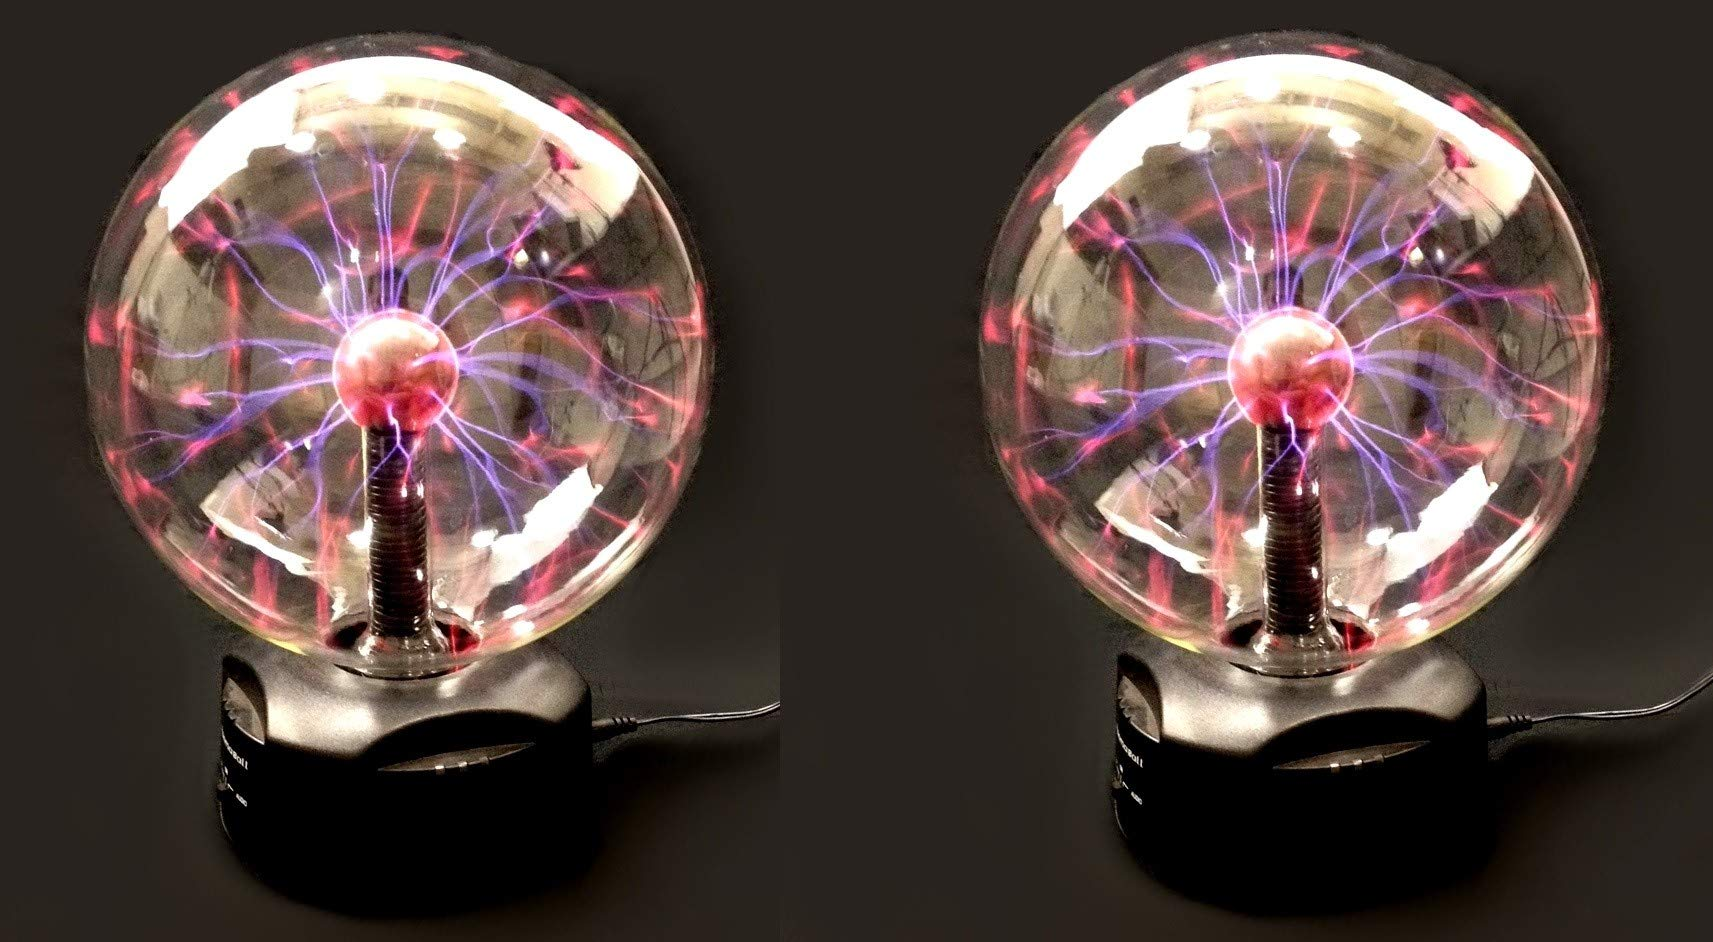 EDM - Set of 2, 8'' Plasma Nebula Ball, Party Light, Touch & Sound Activated